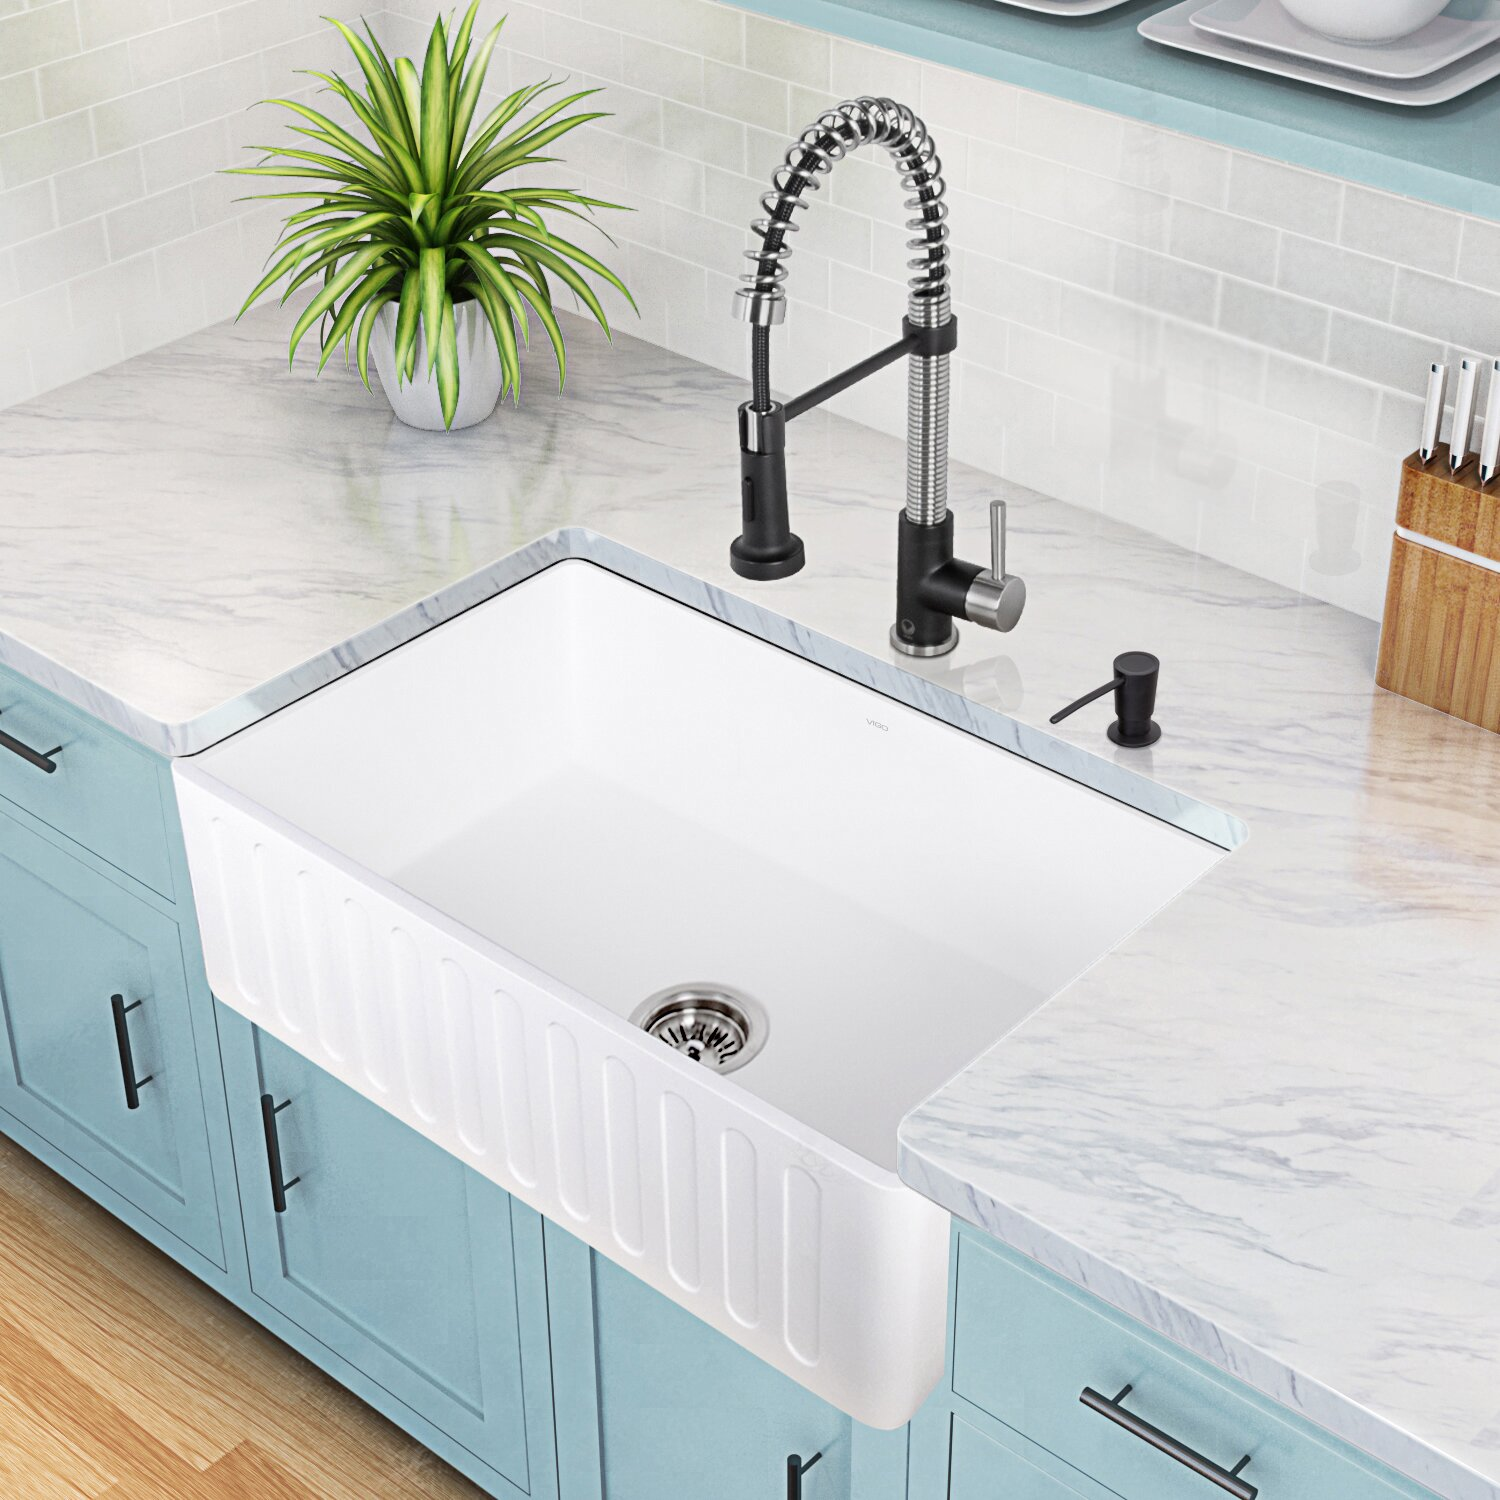 30 inch Farmhouse Apron Single Bowl Matte Stone Kitchen Sink by Vigo